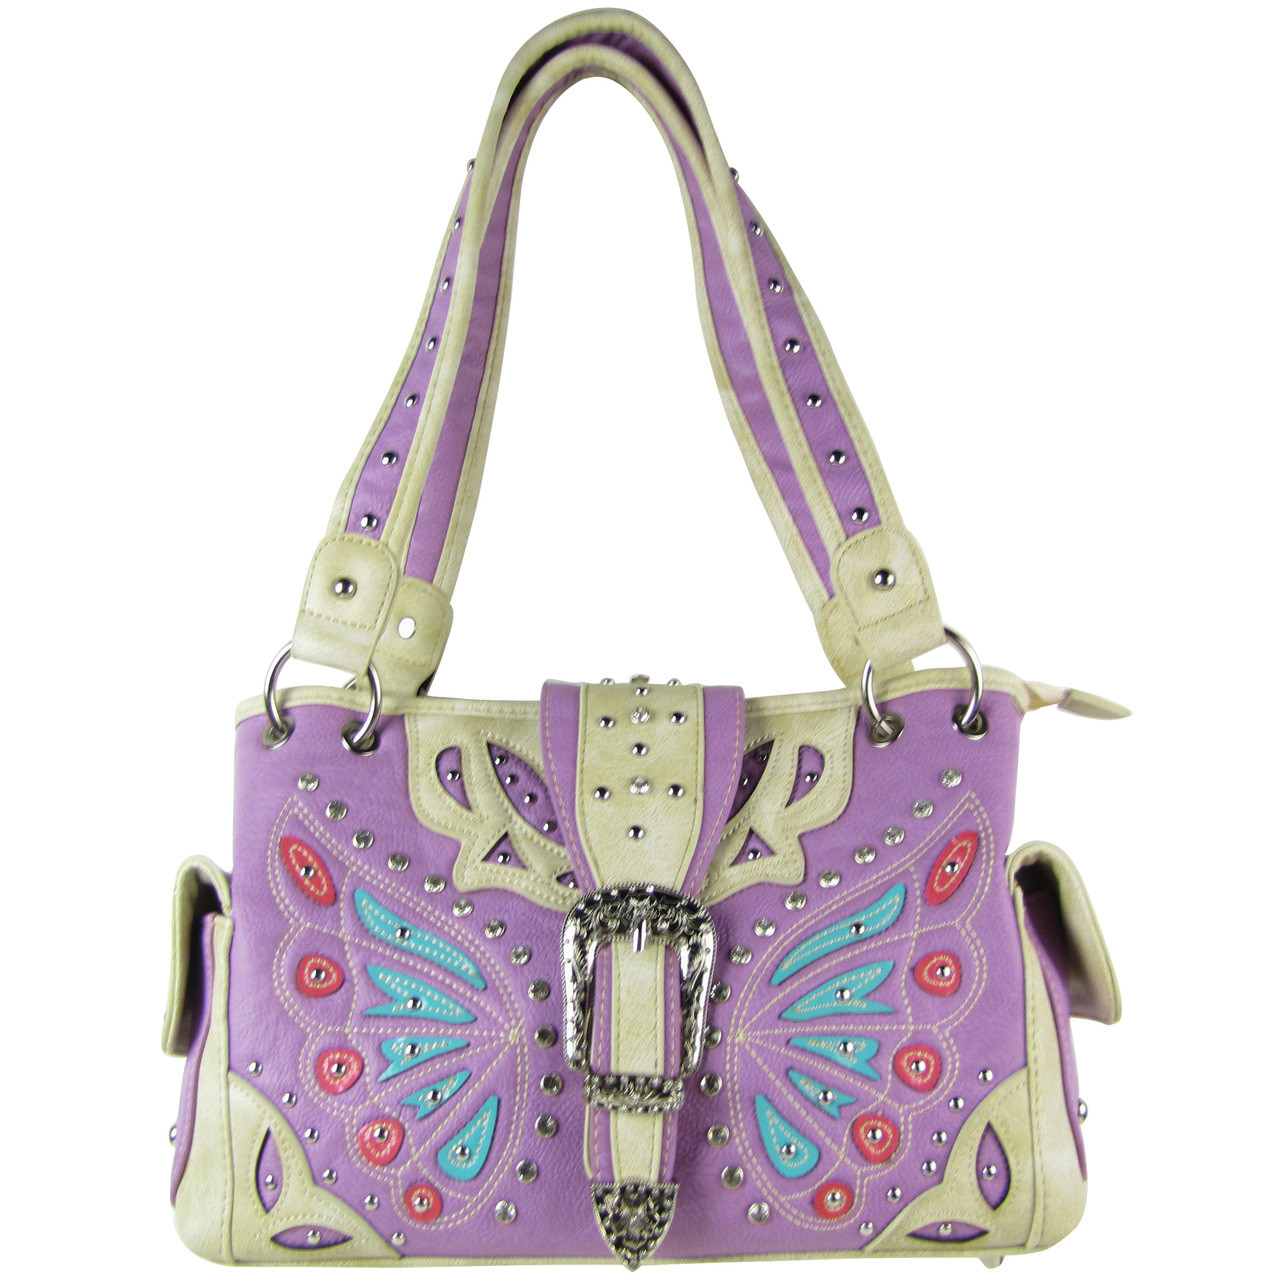 PURPLE BUTTERFLY BUCKLE STUDDED RHINESTONE CROSS LOOK SHOULDER HANDBAG HB1-CHF1102PPL